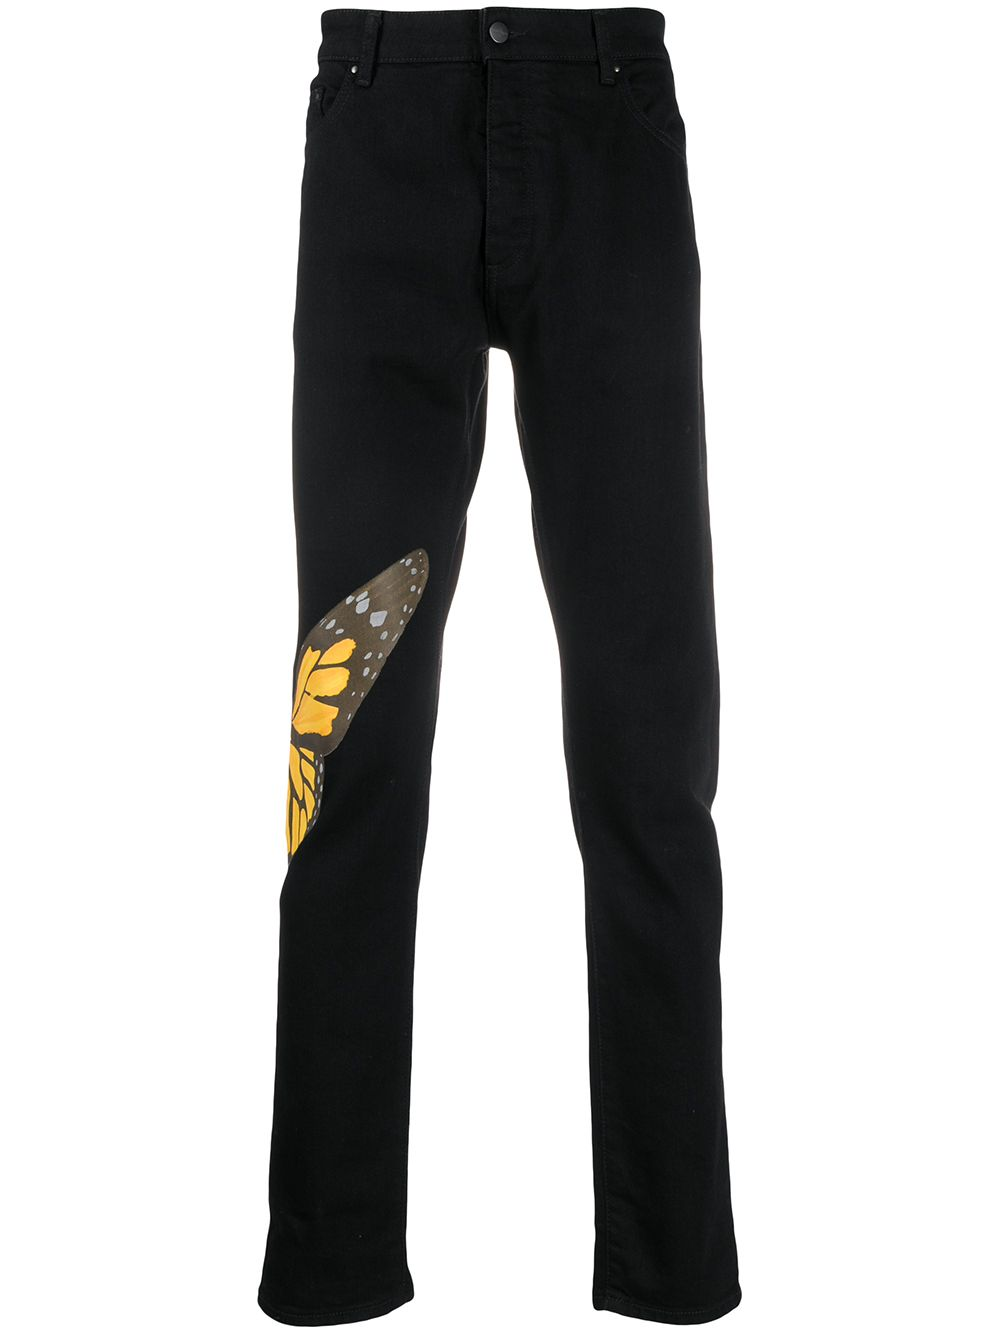 PALM ANGELS Wing Jeans Black